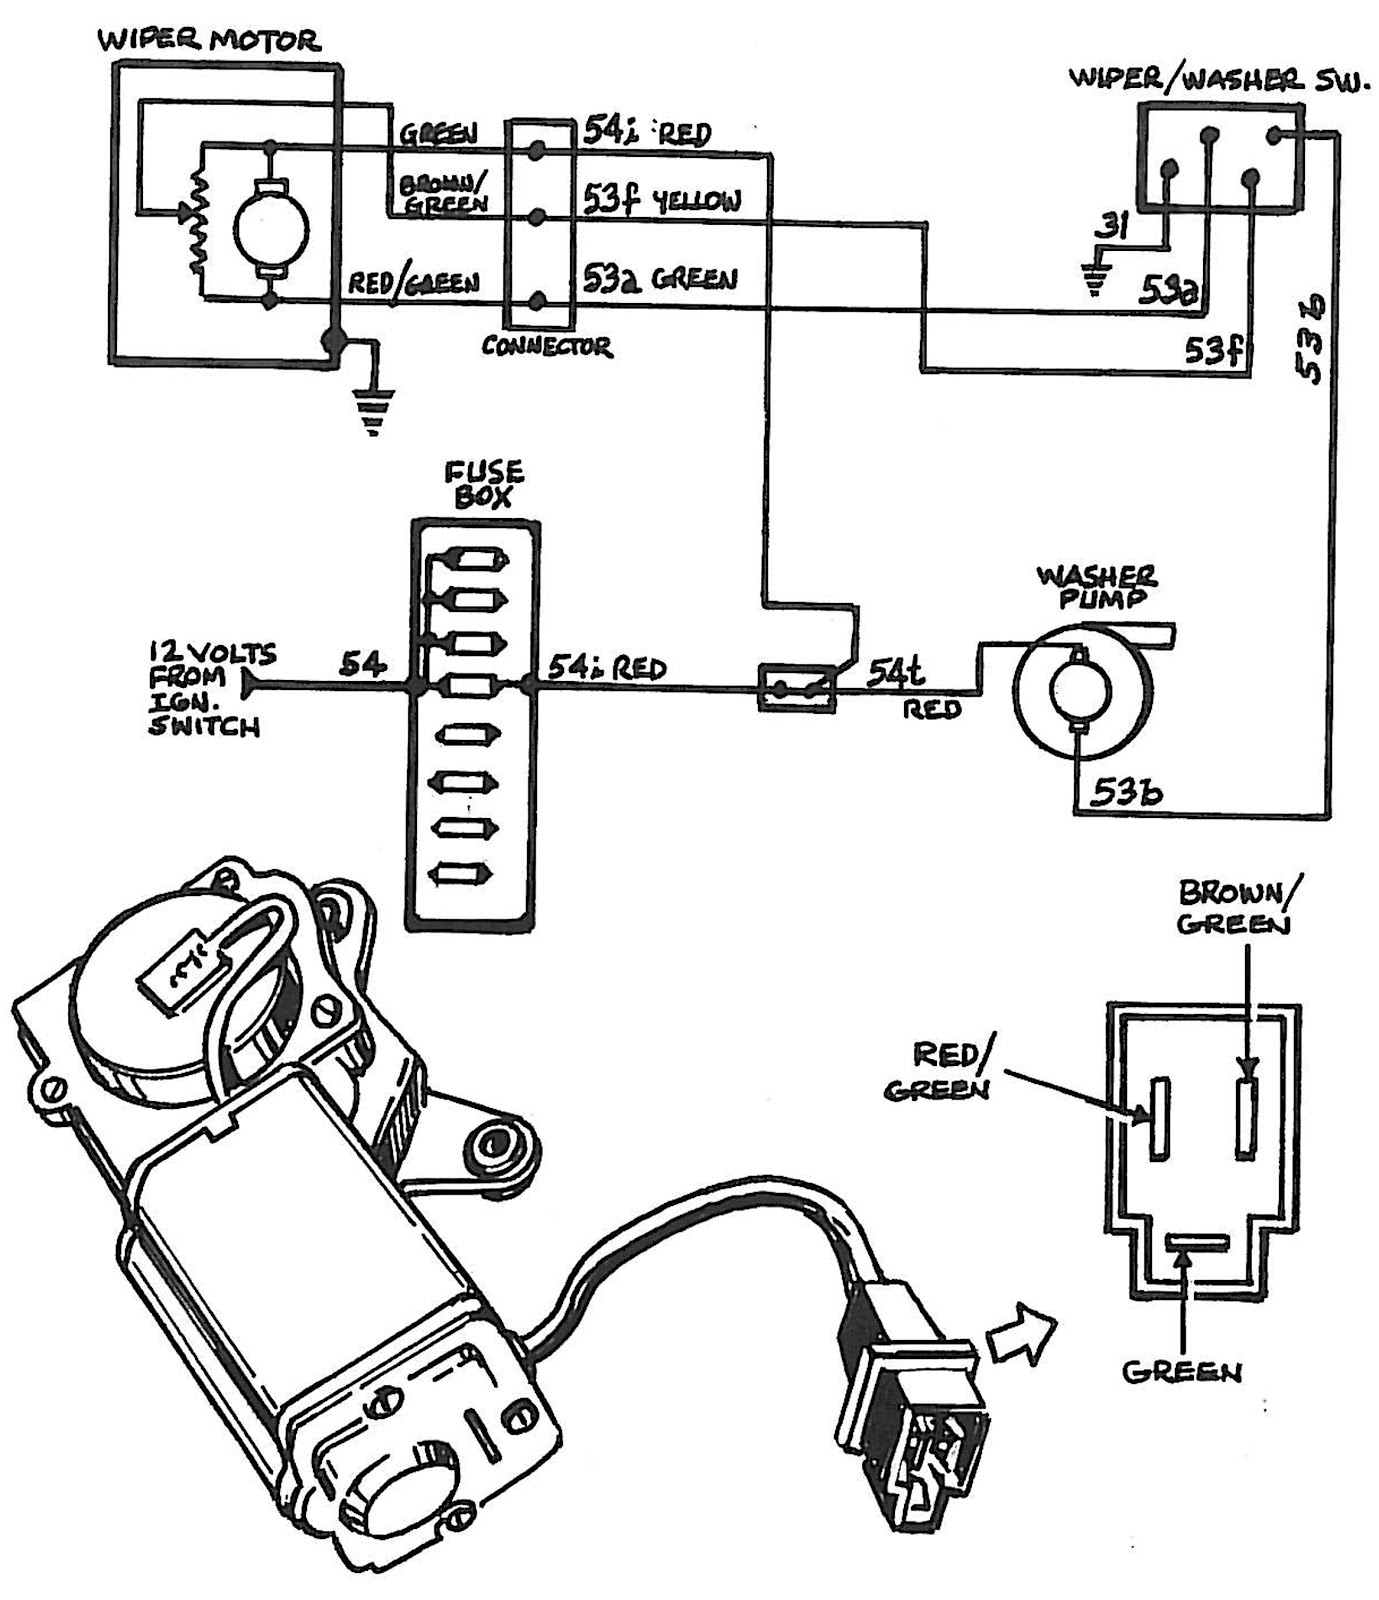 1983 chevrolet chevette wiring diagram wiring diagram u2022 rh envisionhosting co